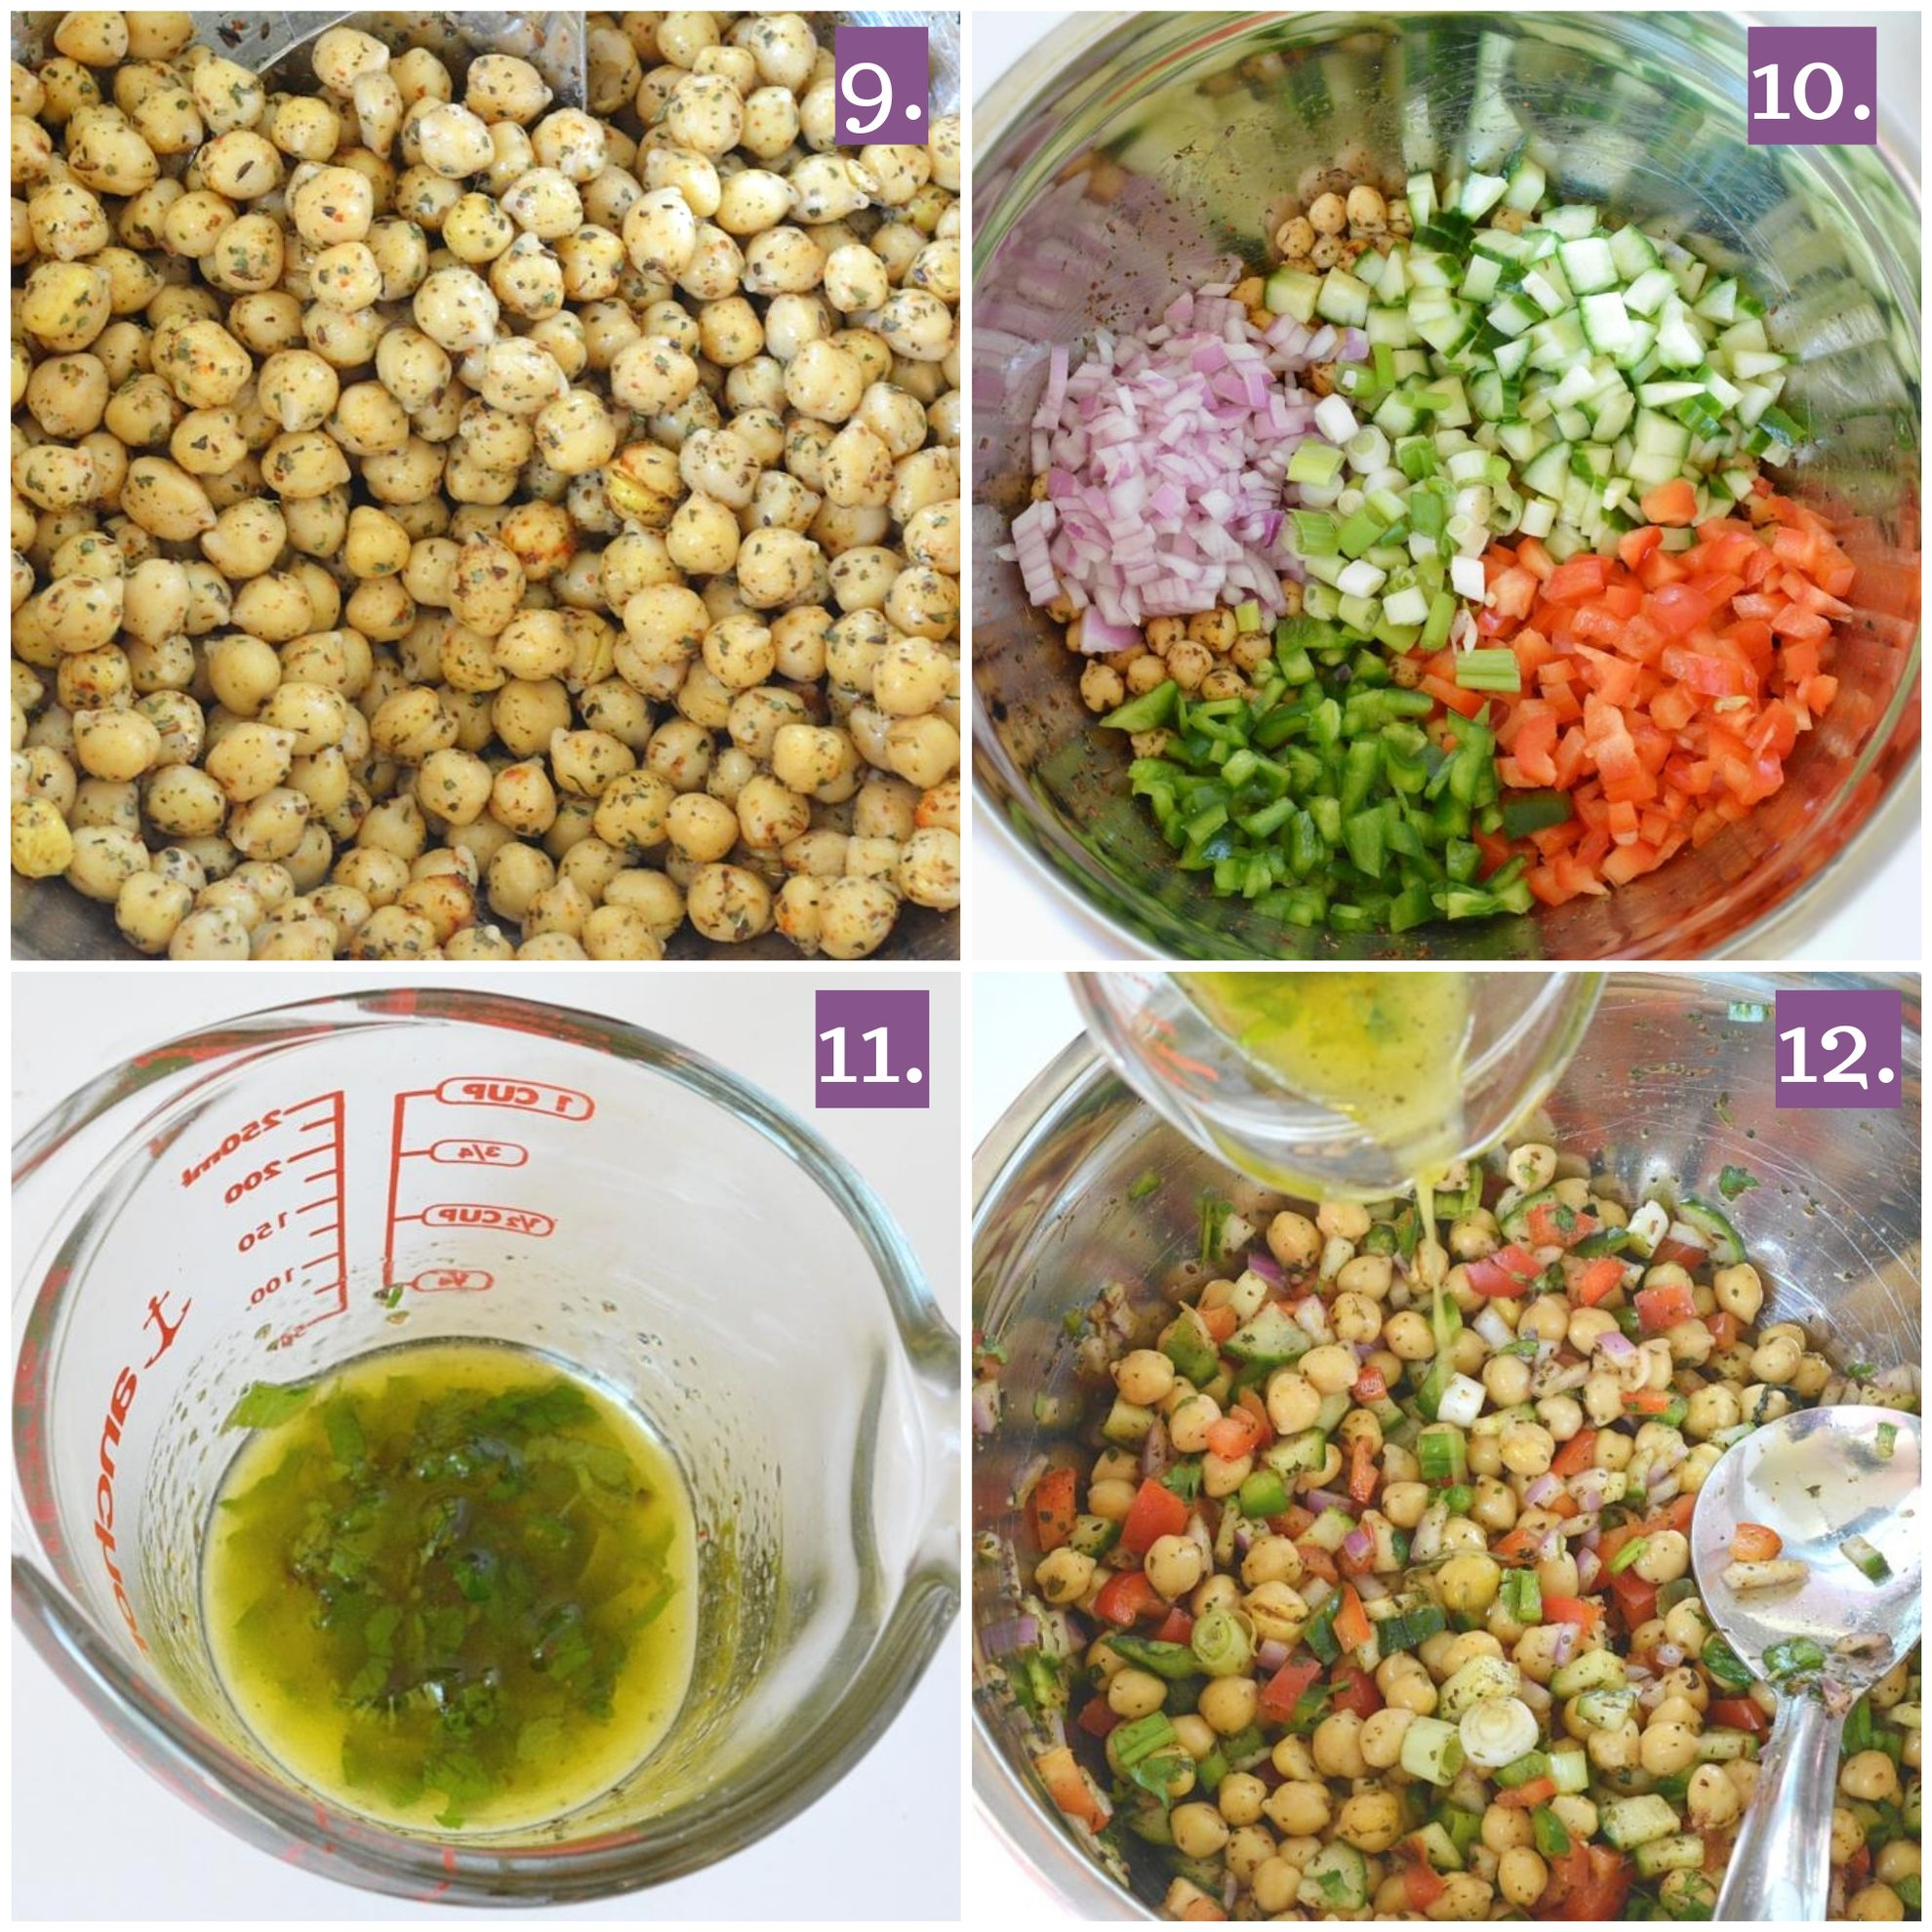 Prepare dressing for chickpea salad